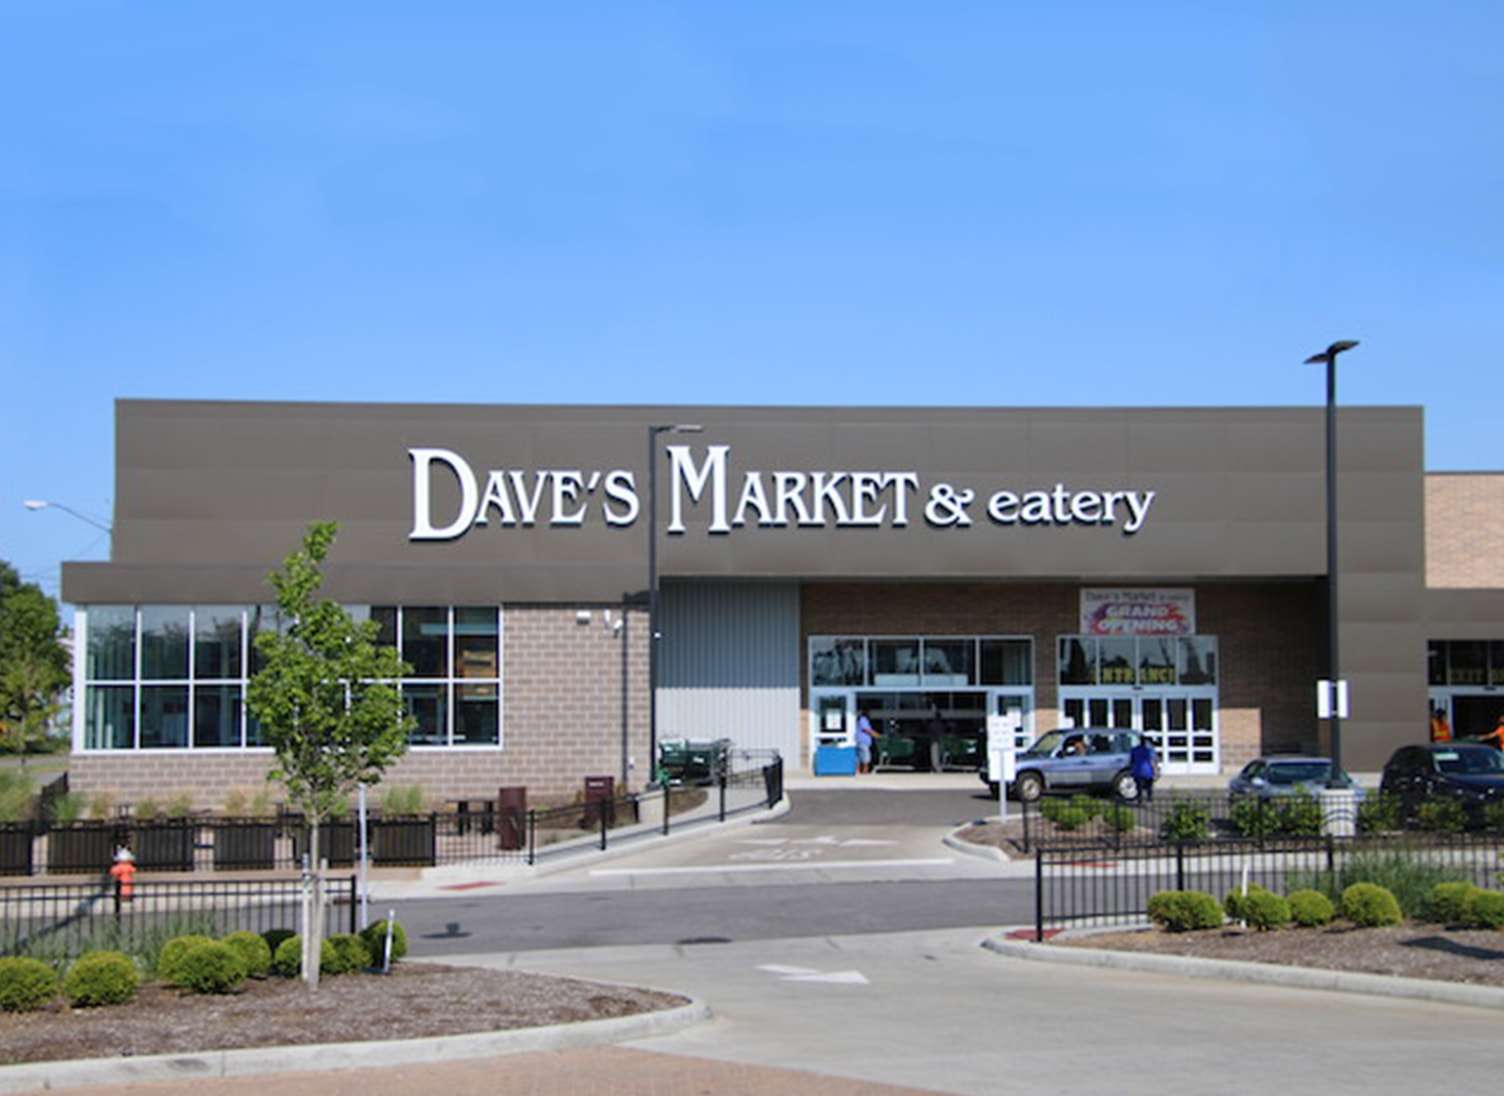 dave's market & eatery in cleveland